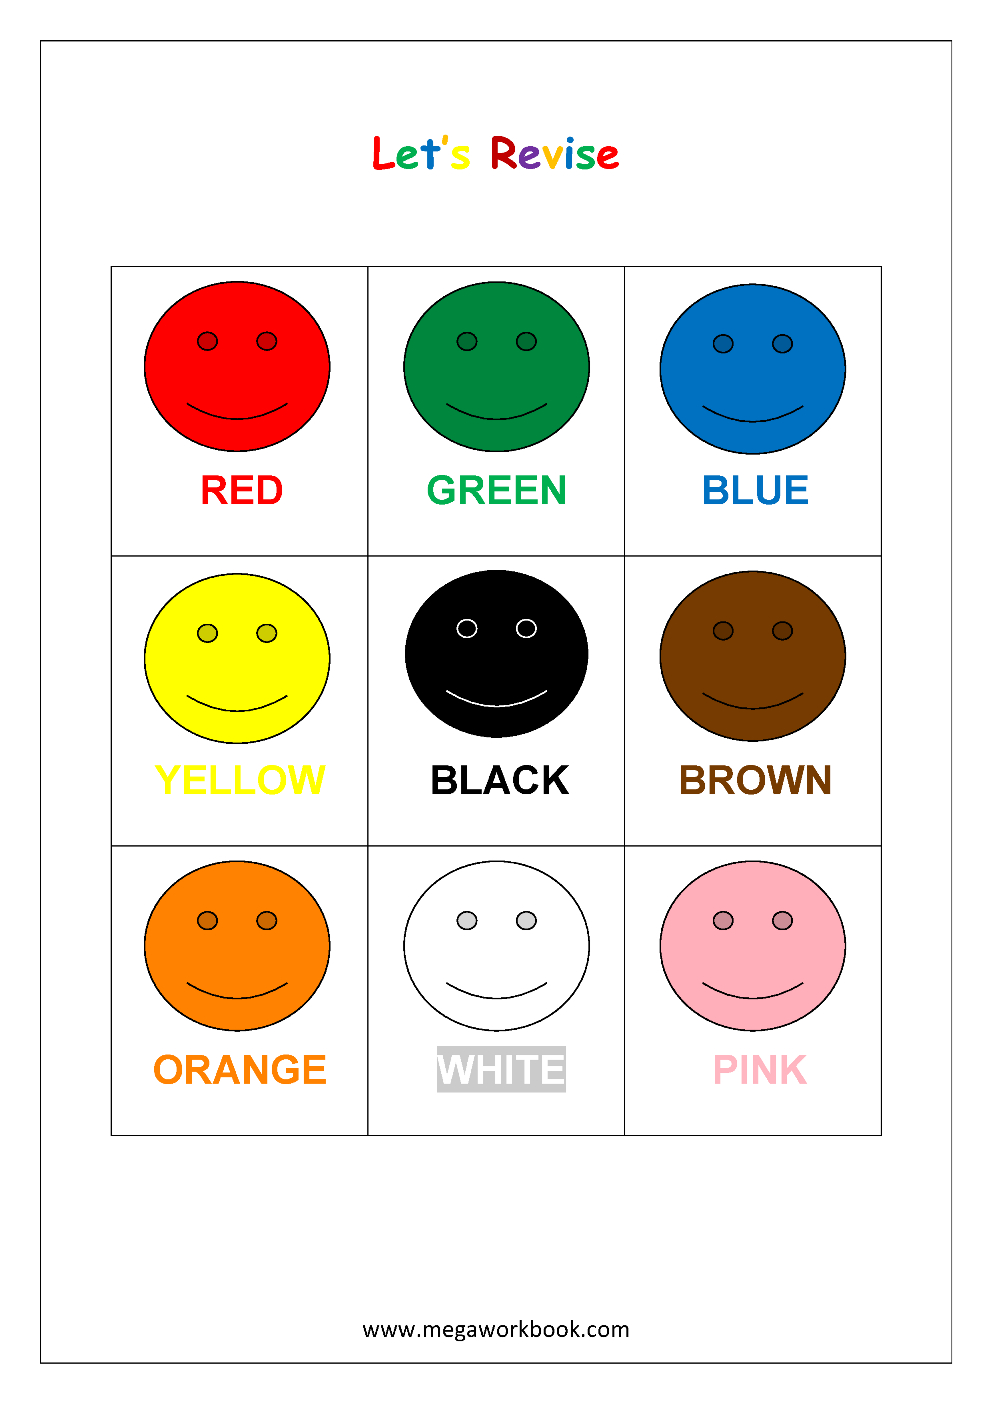 Free Printable Color Recognition Worksheets - Learn Basic Colors | Color Recognition Worksheets Free Printable